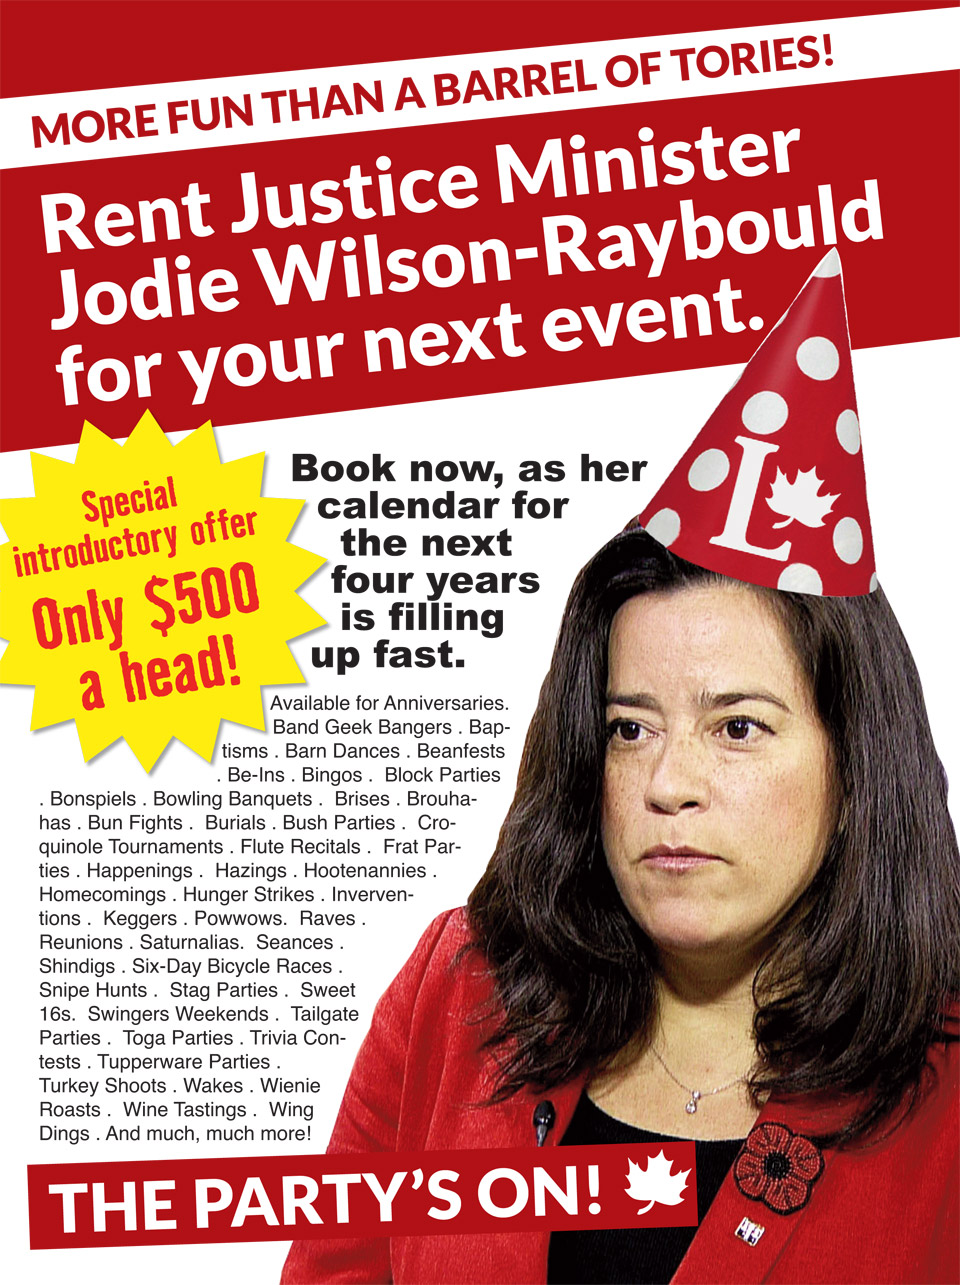 Jodie-Wilson-raybould-party